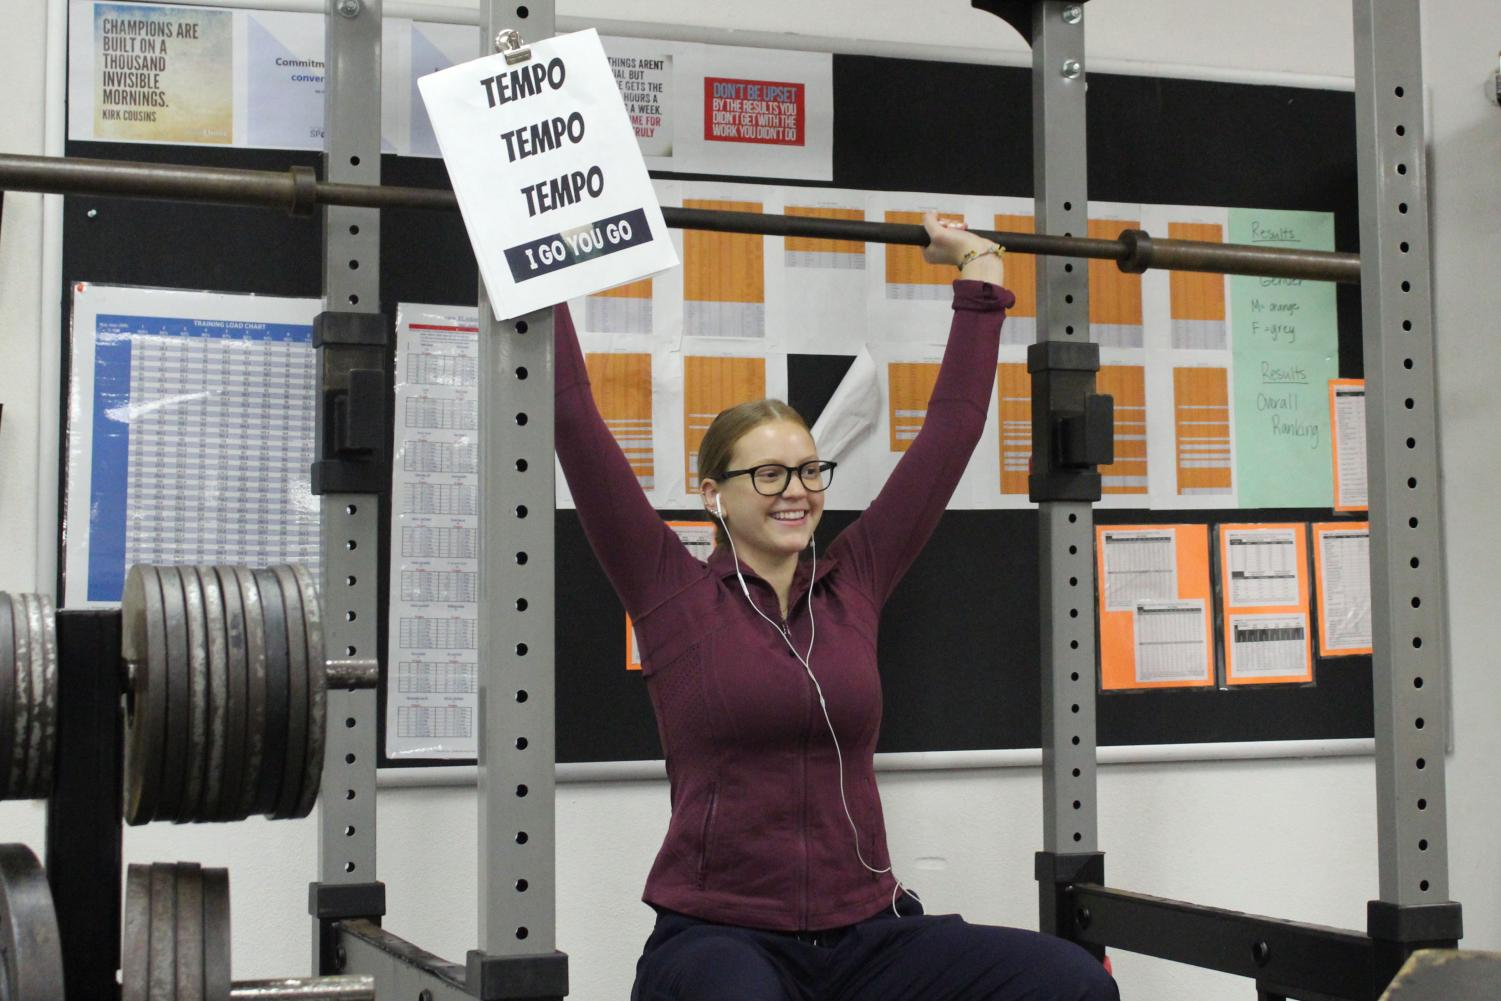 Senior Lindsey Olson works out with the weight bars. The weight room at St. Louis Park High School is a workout area for students.